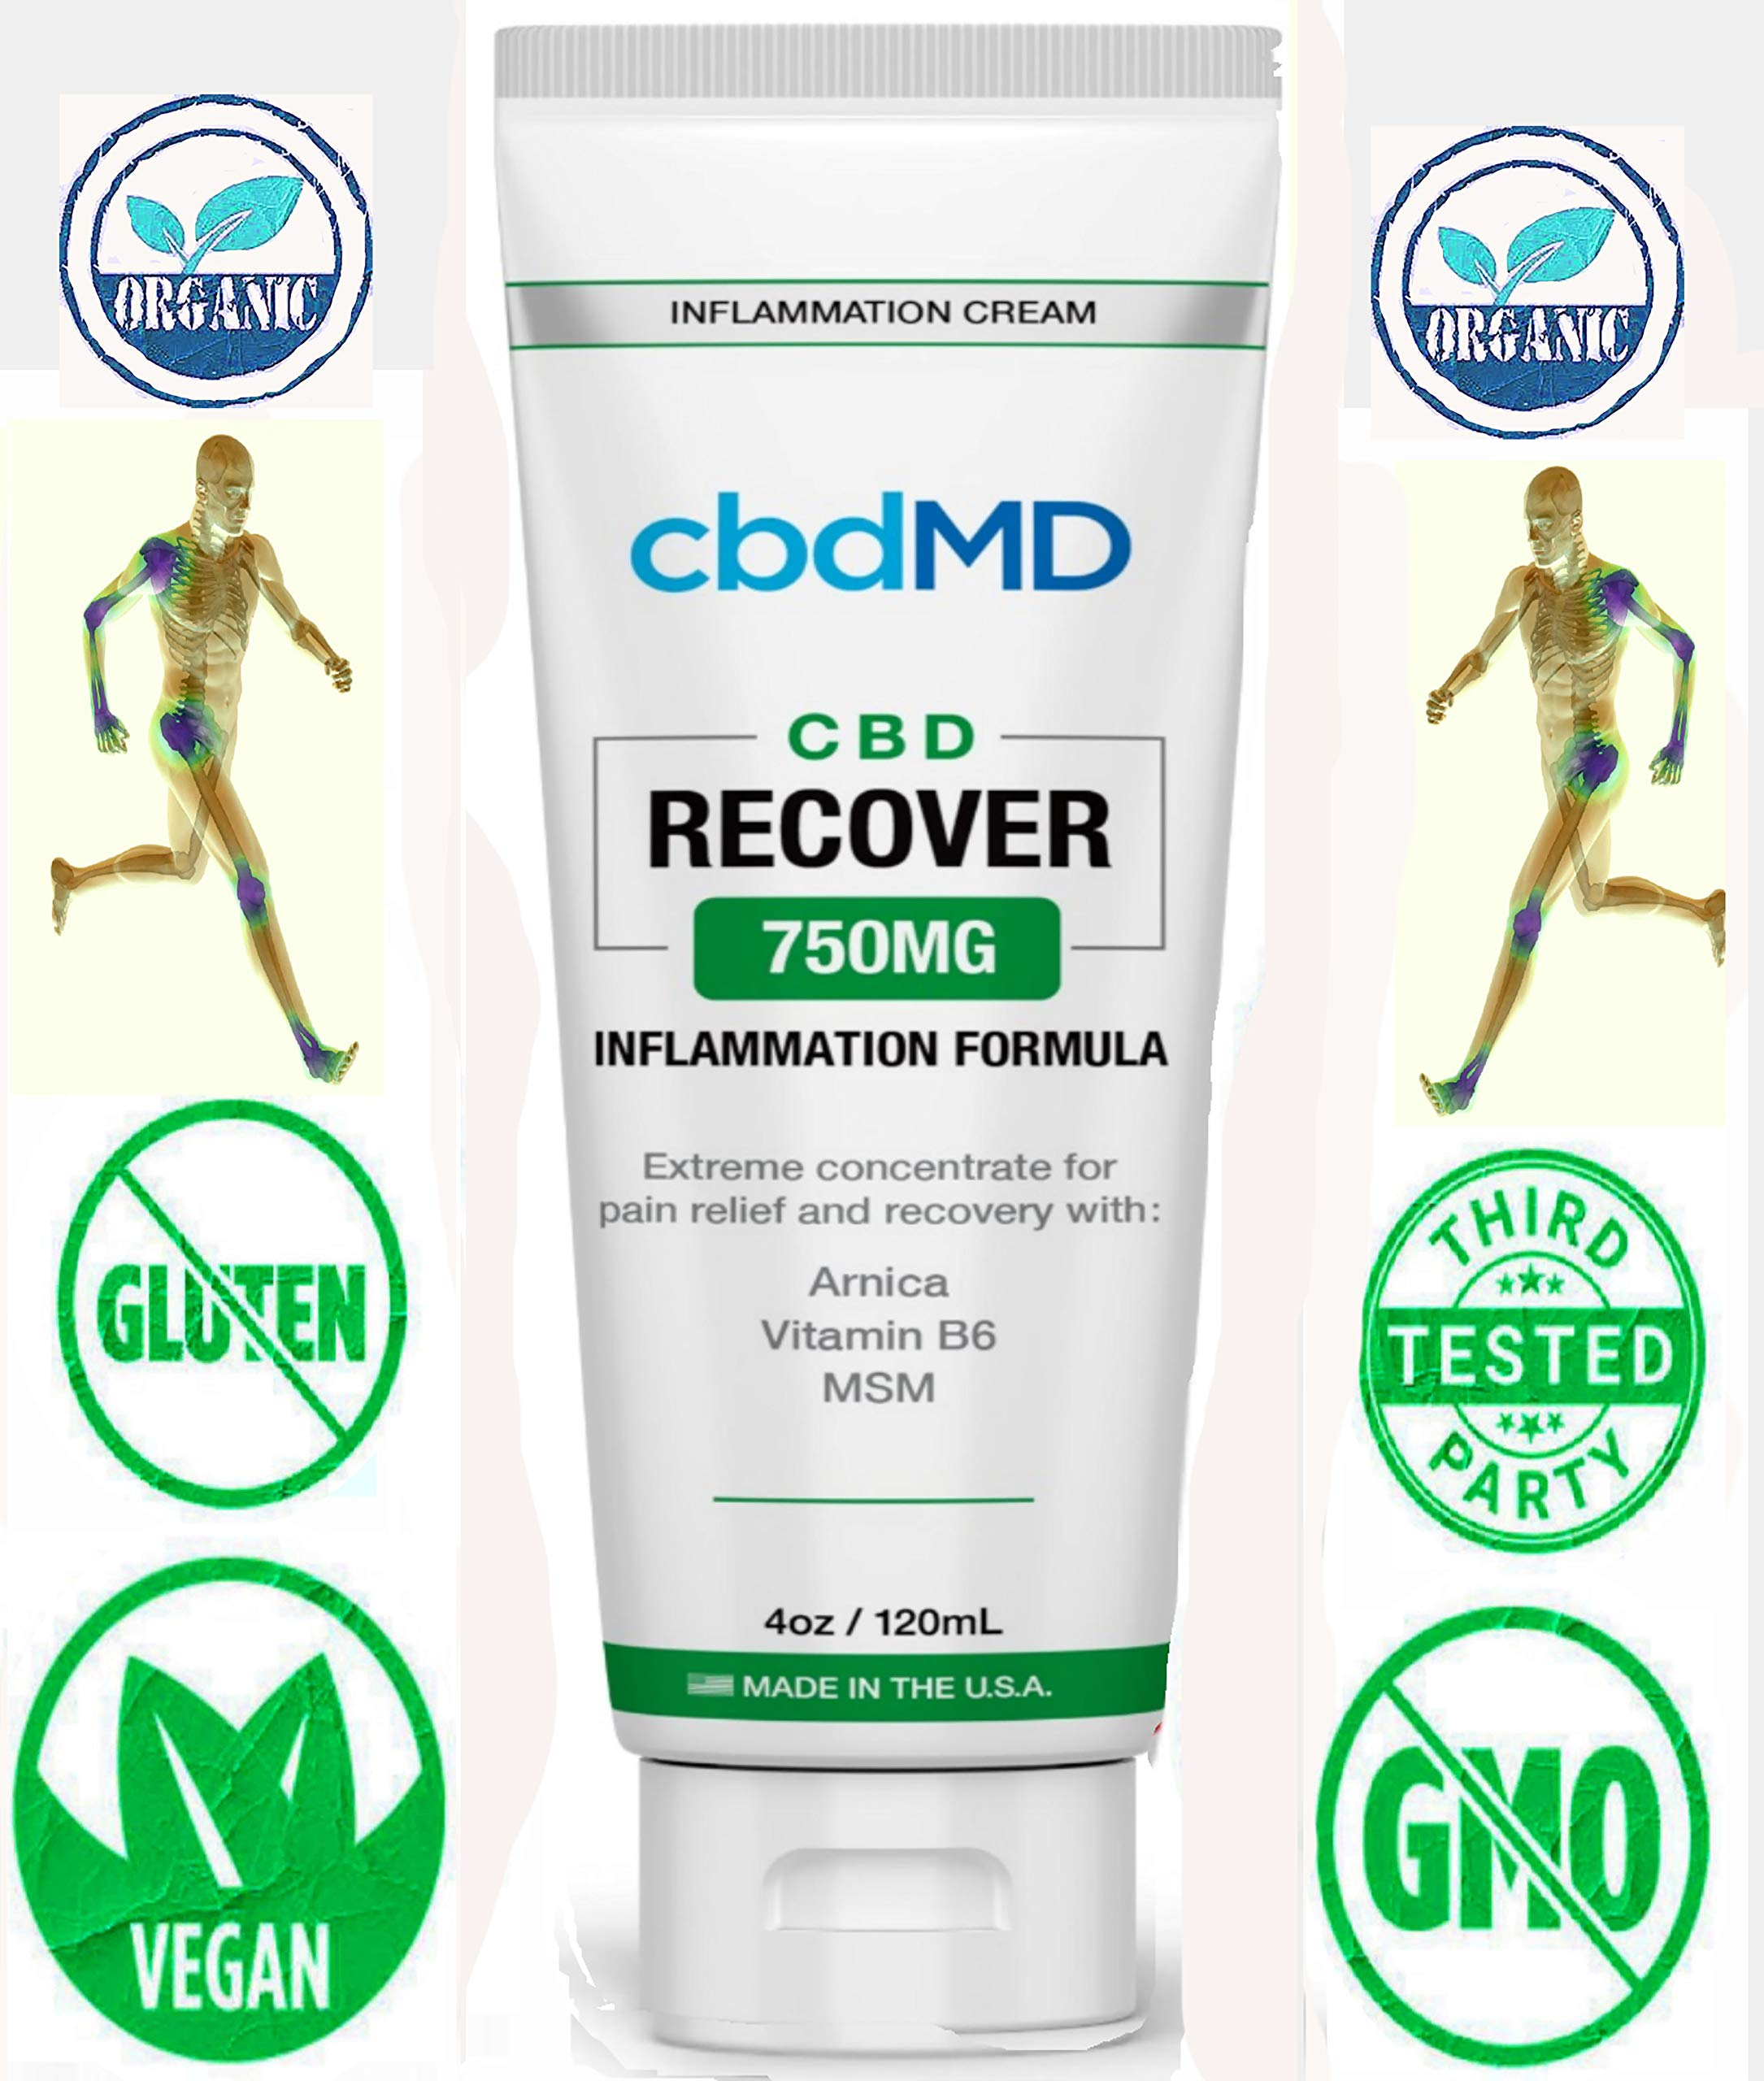 750mg Organic Recovery Squeeze Gel Cream Arnica Msm B6 Pain Stress Relief Topical Lotion Immune Skin Support U.S. Grown Hemp Hydration Omegas Amino Acids by MD Organics